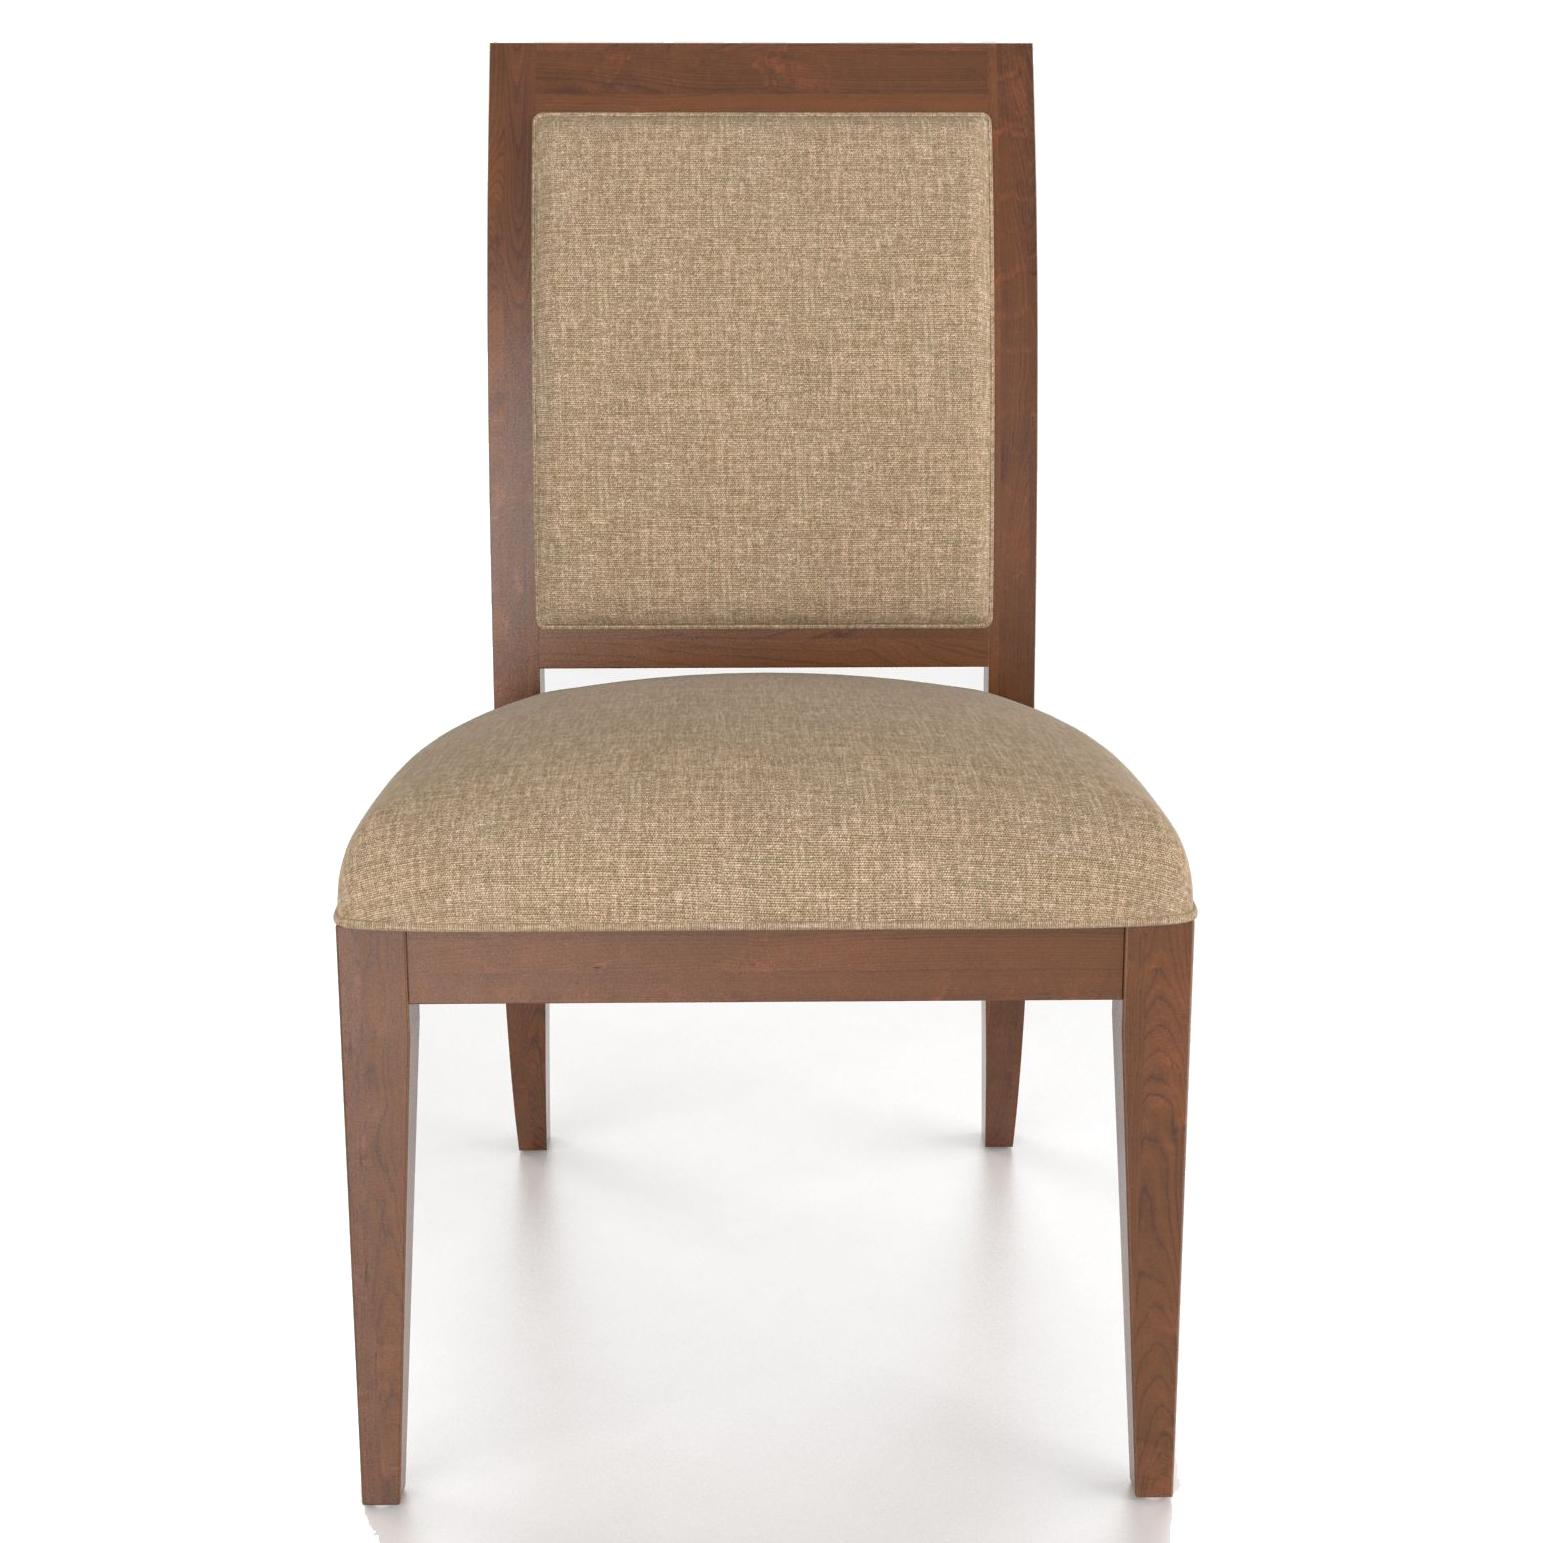 Custom Dining Customizable Upholstered Side Chair by Canadel at Steger's Furniture